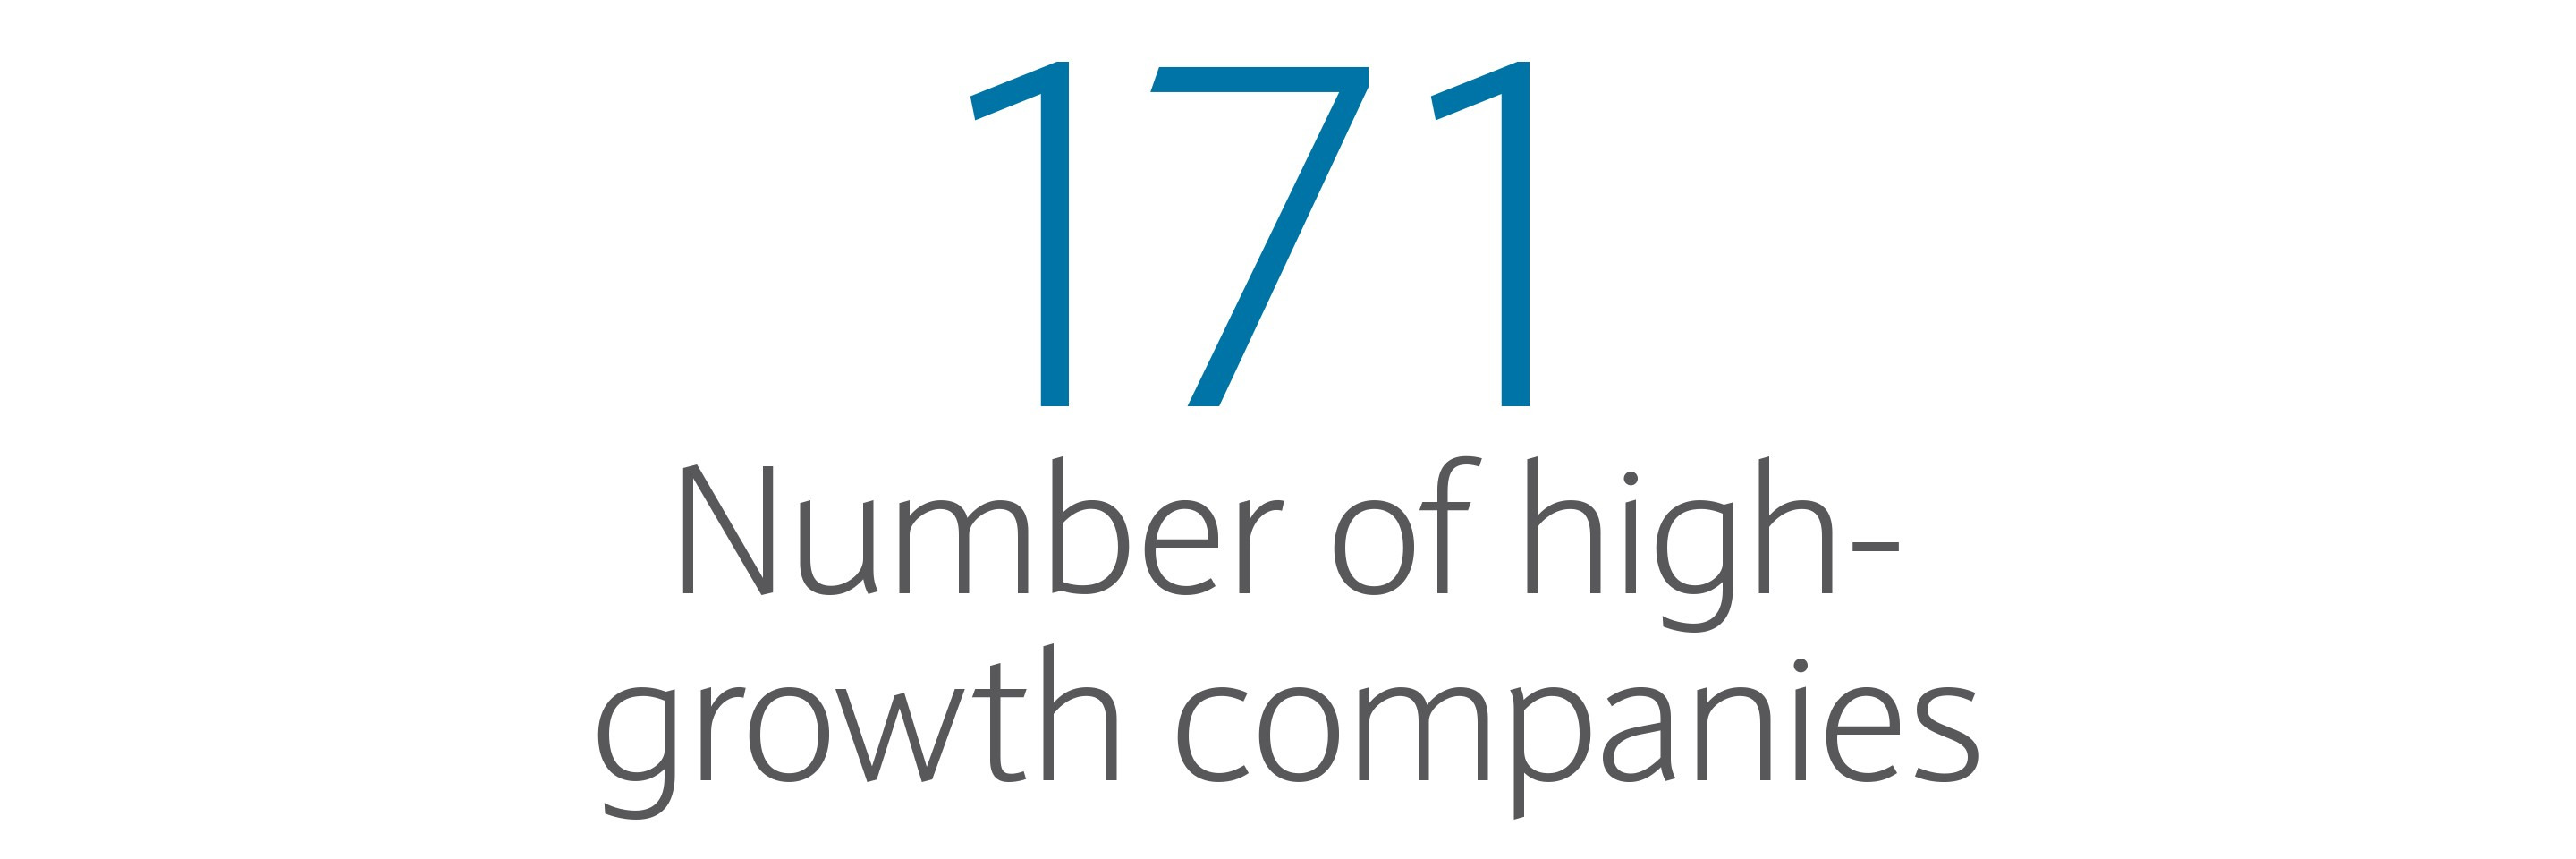 171: Number of high-growth companies